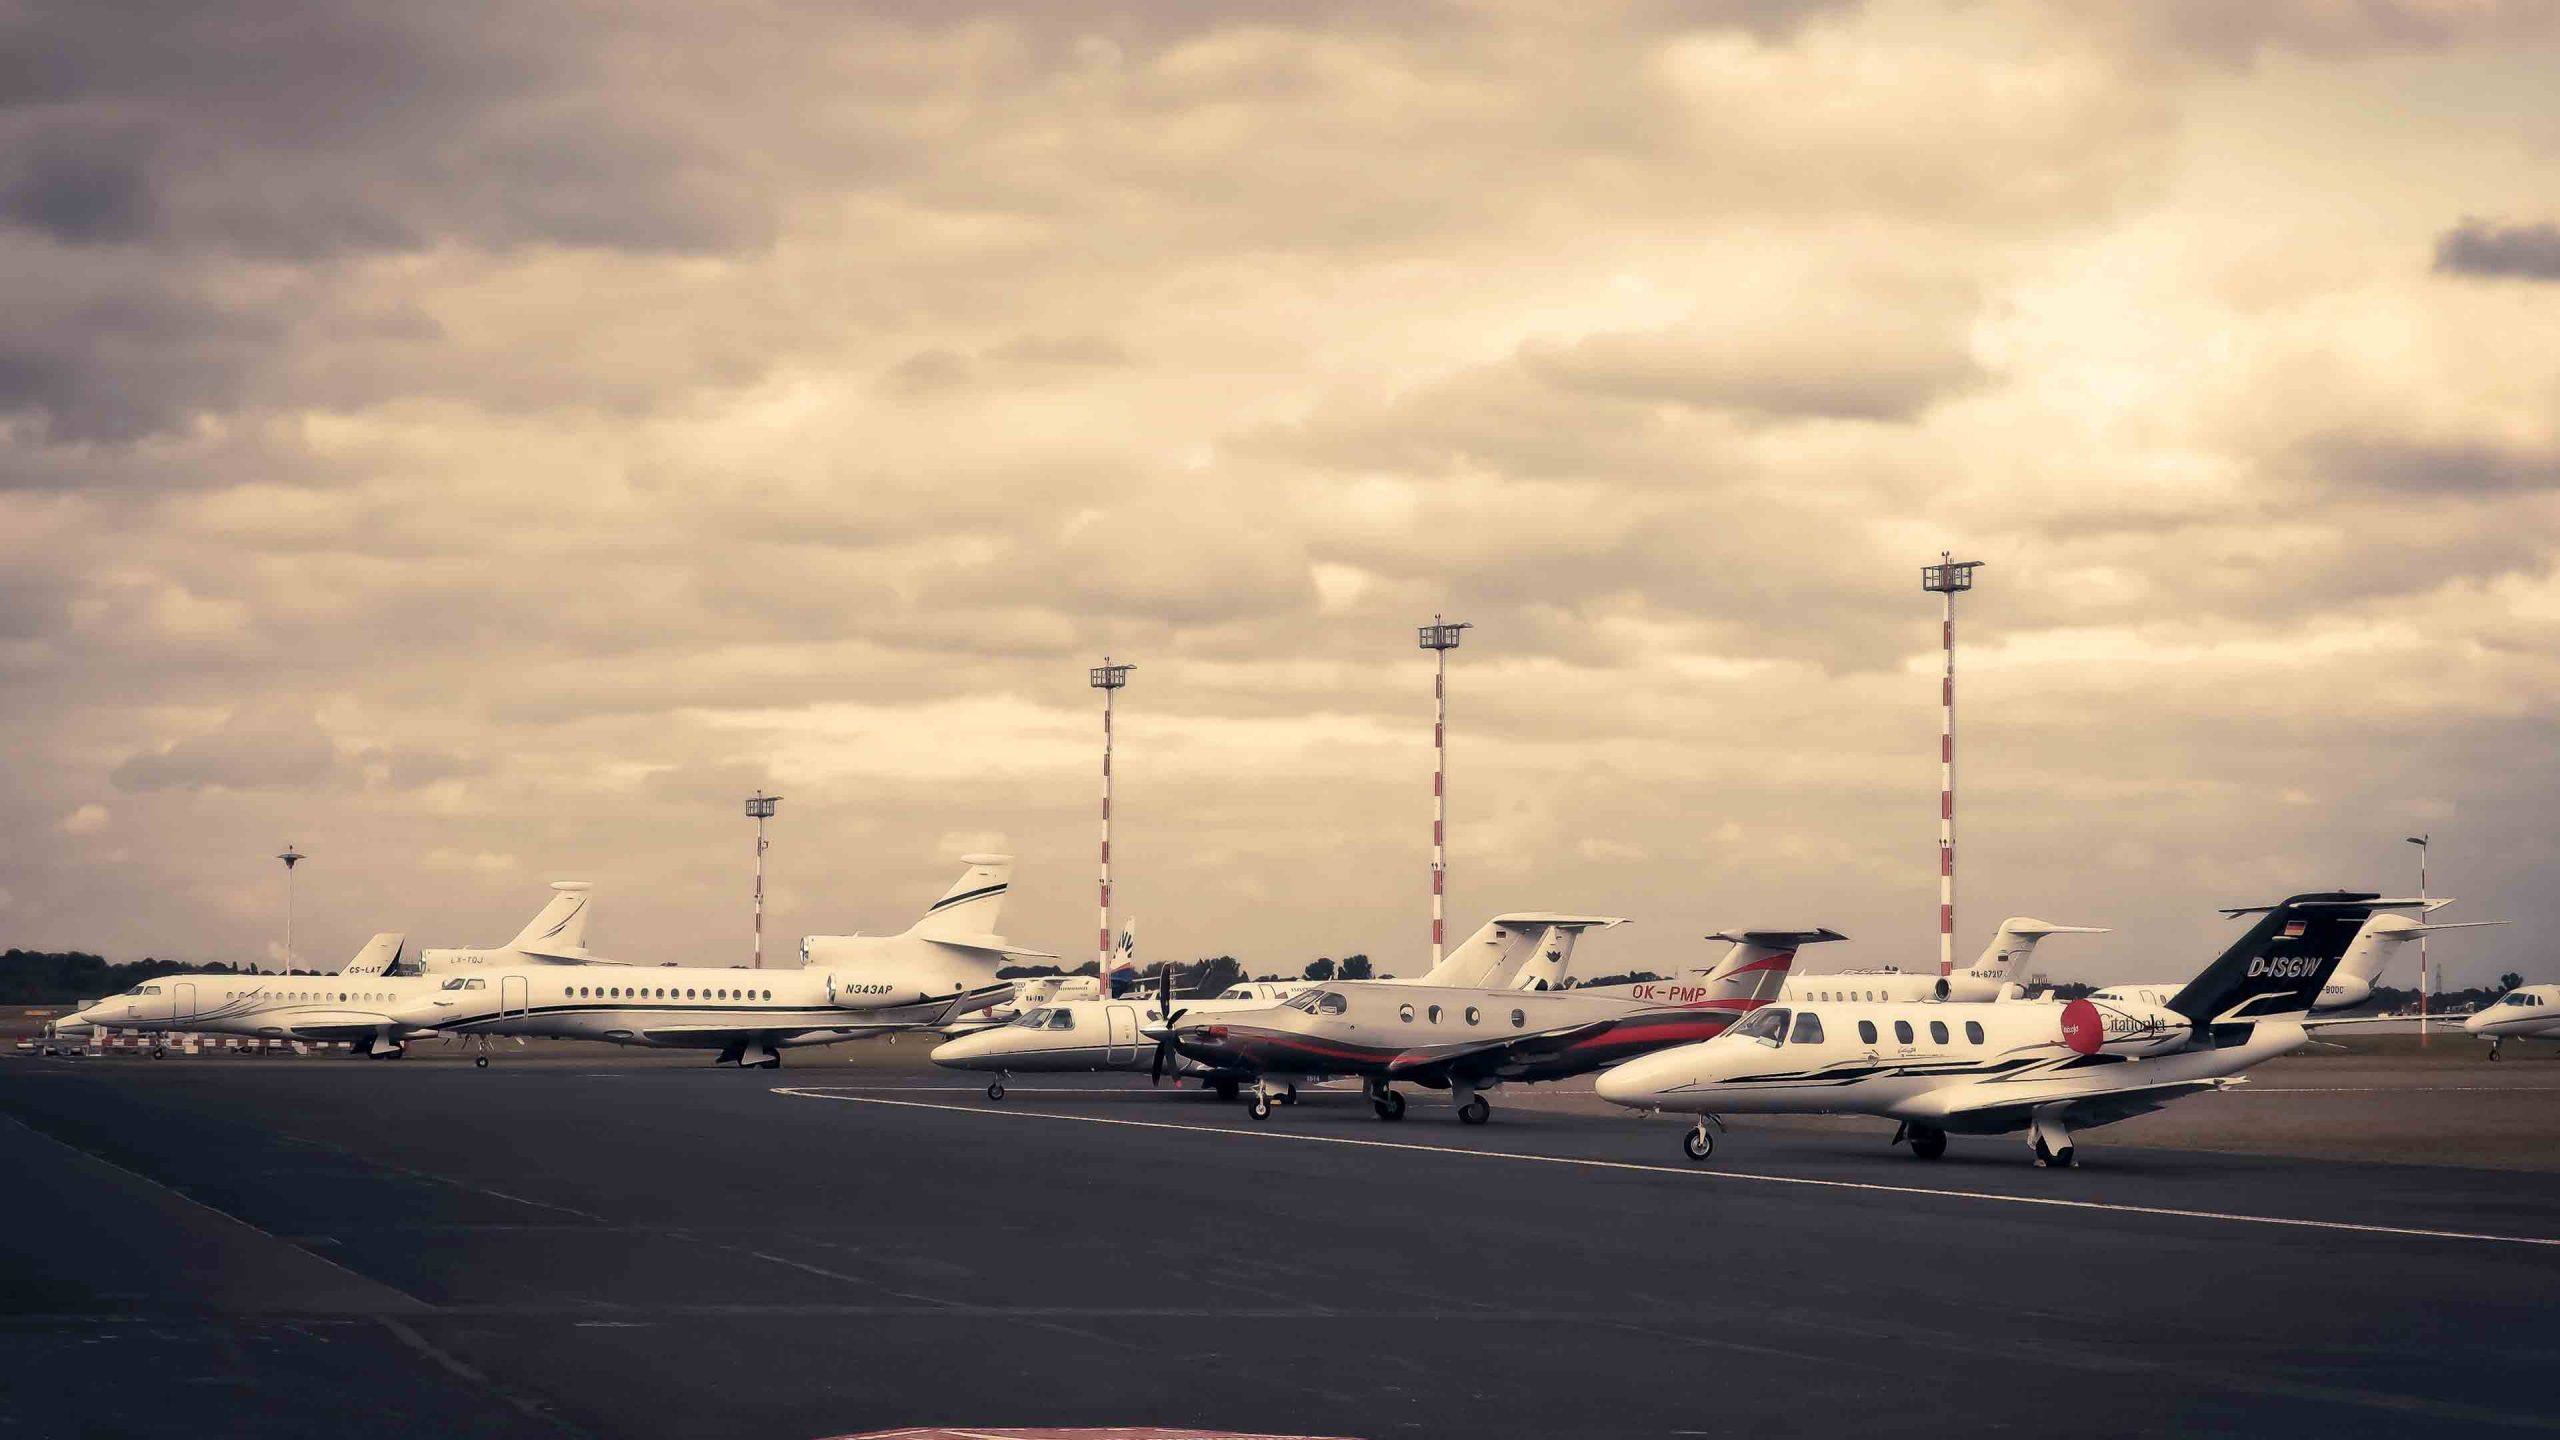 aircraft airline airliner wallpaper pc